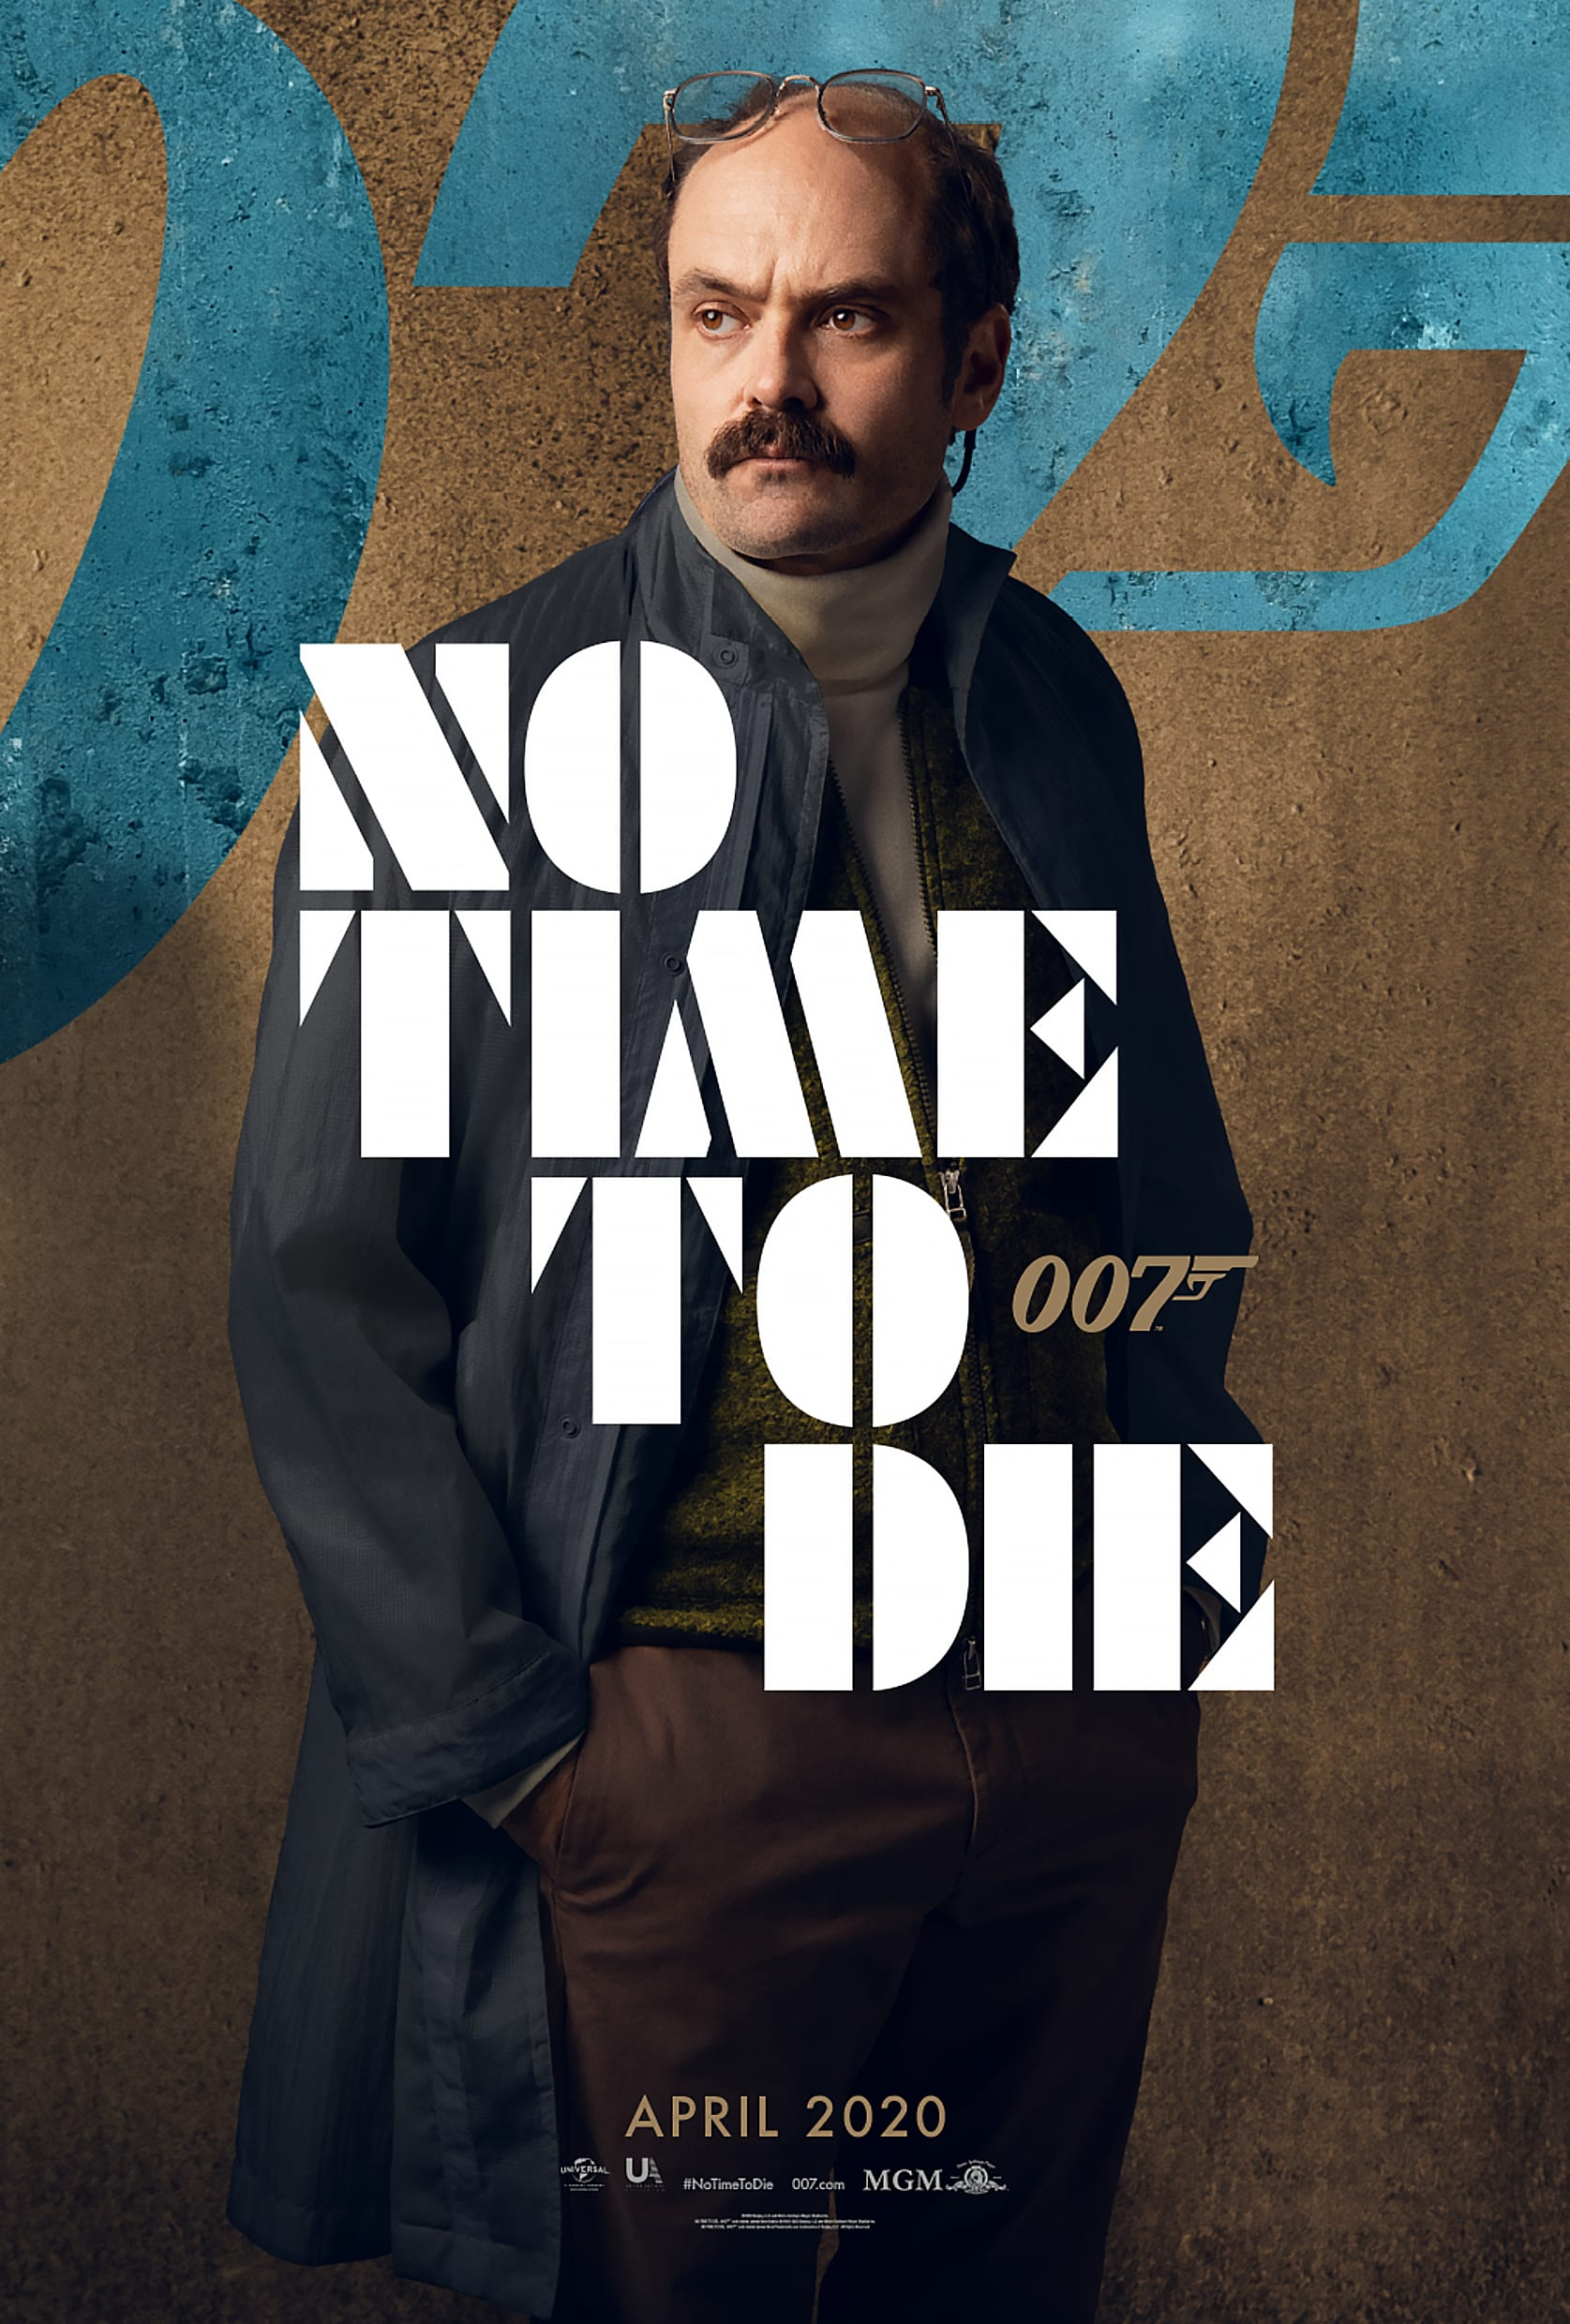 007 No Time To Die Bond 25 Character Posters David Dencik as Valdo